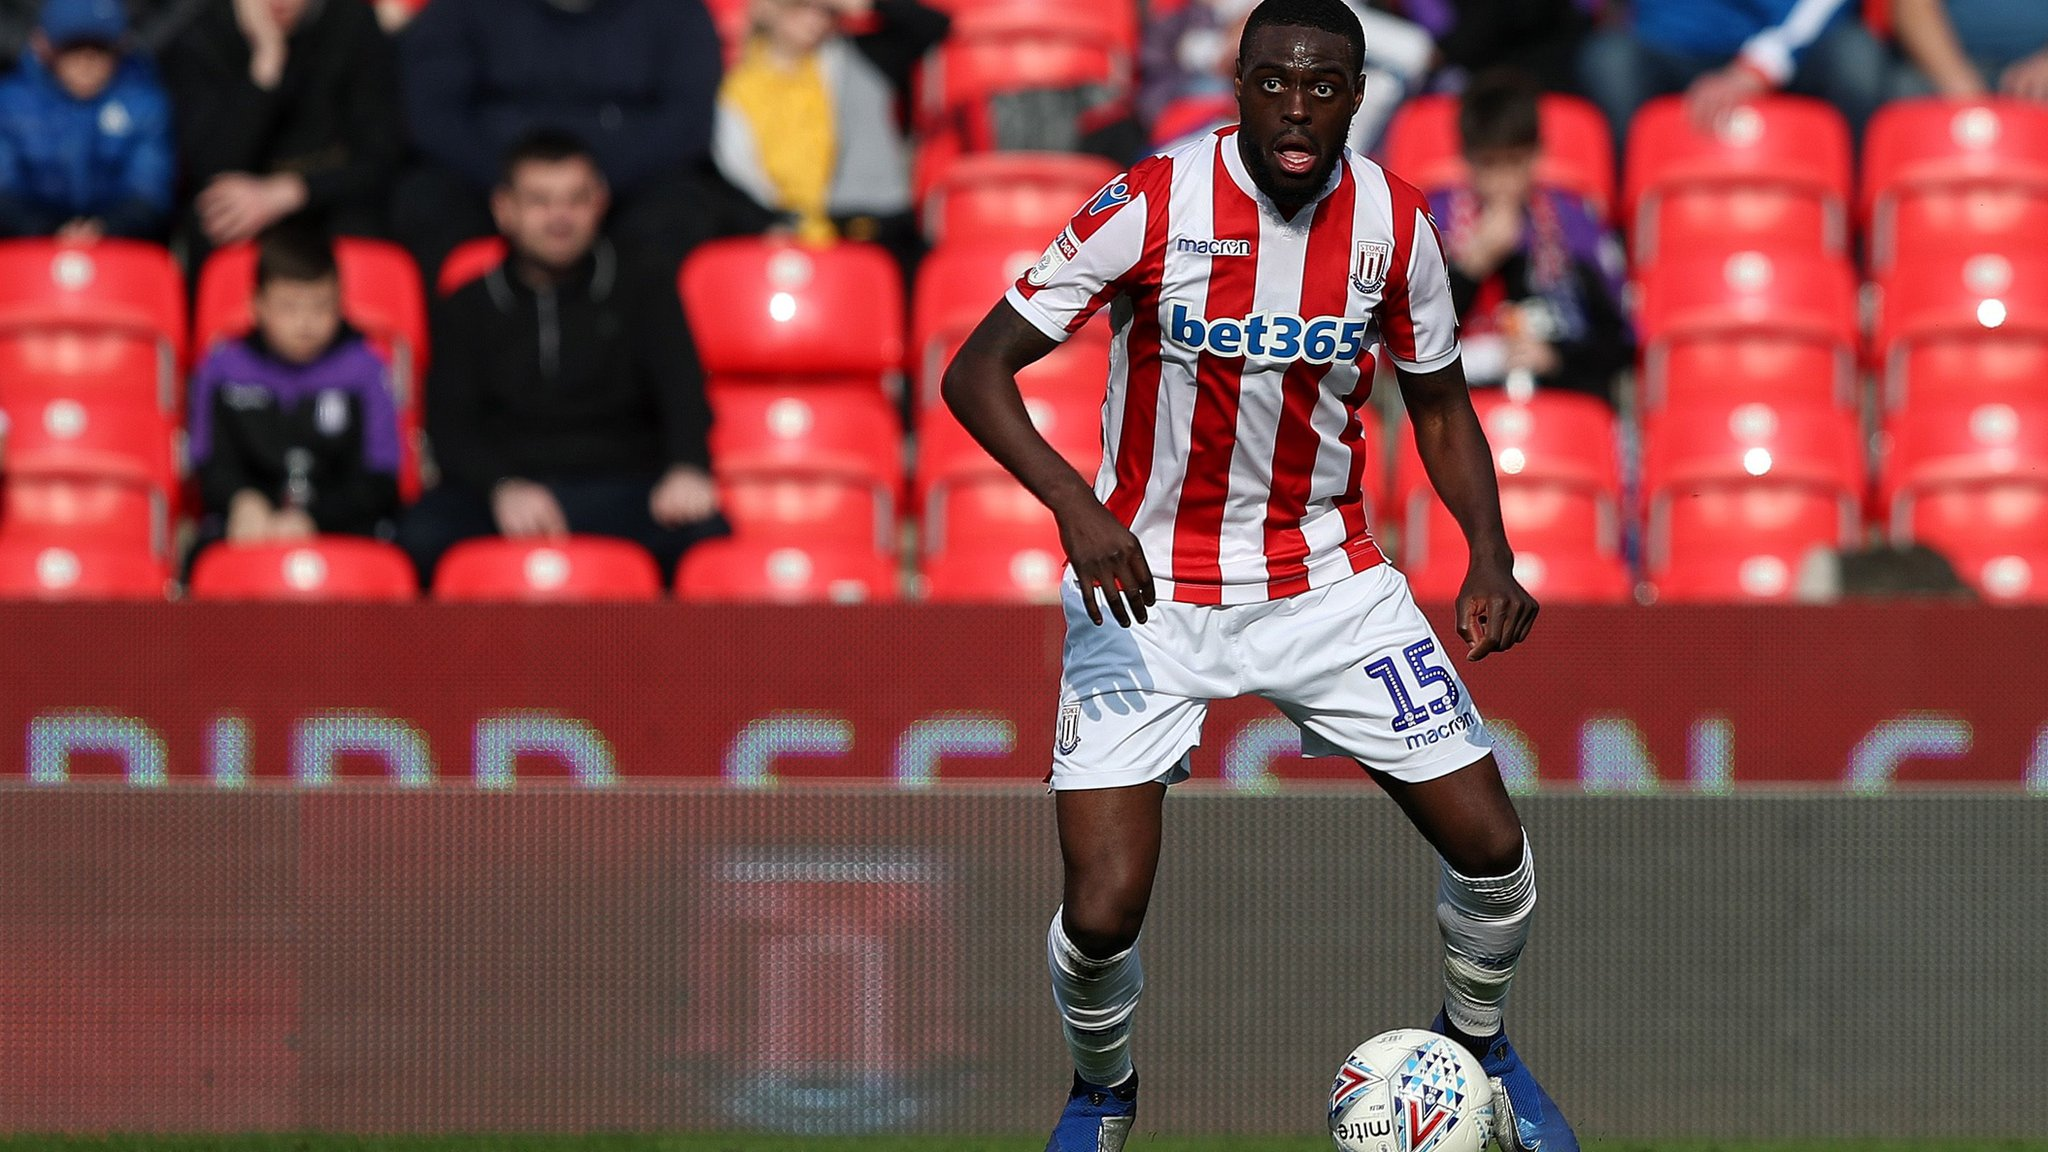 Stoke City: Bruno Martins Indi contemplates leaving in search of Premier League return